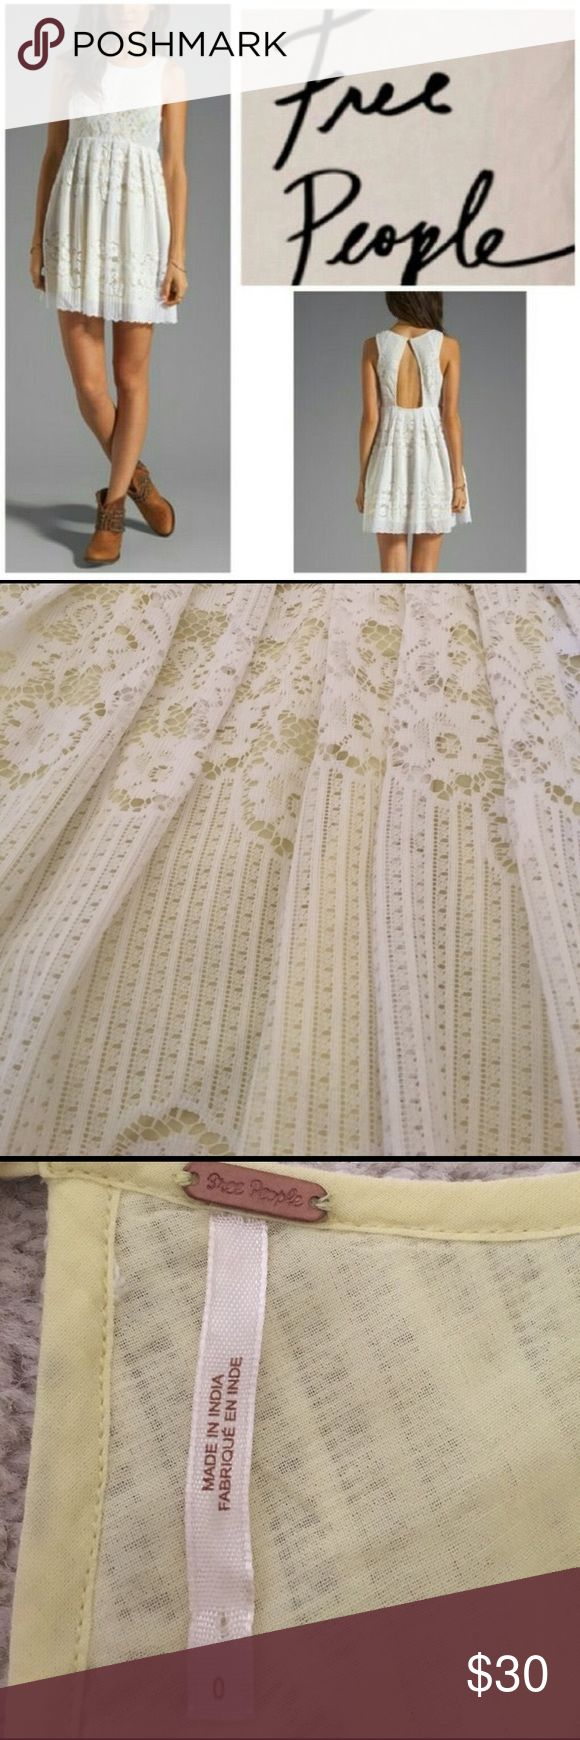 Free People White Lace Dress Perfect summer dress. Light white Lace with pale yellow lining and keyhole back. Worn once and is in mint condition. Babydoll Chić! Free People Dresses